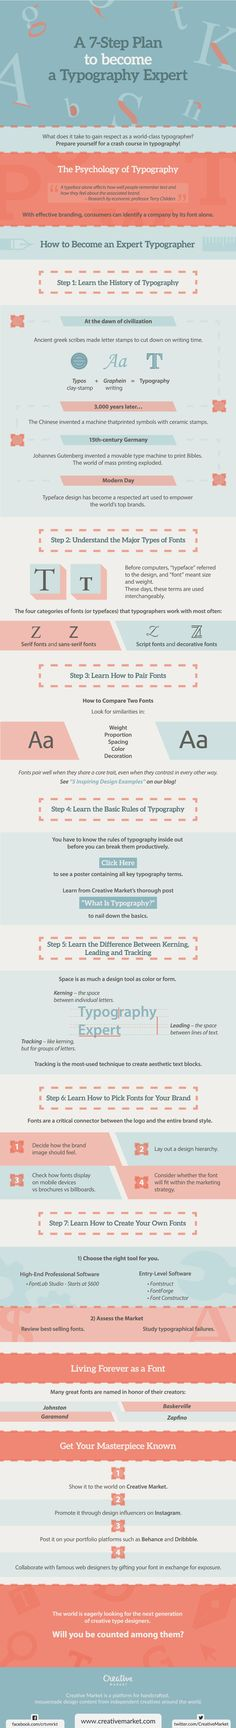 a-7-step-plan-to-become-a-typography-expert-infographic-1-01